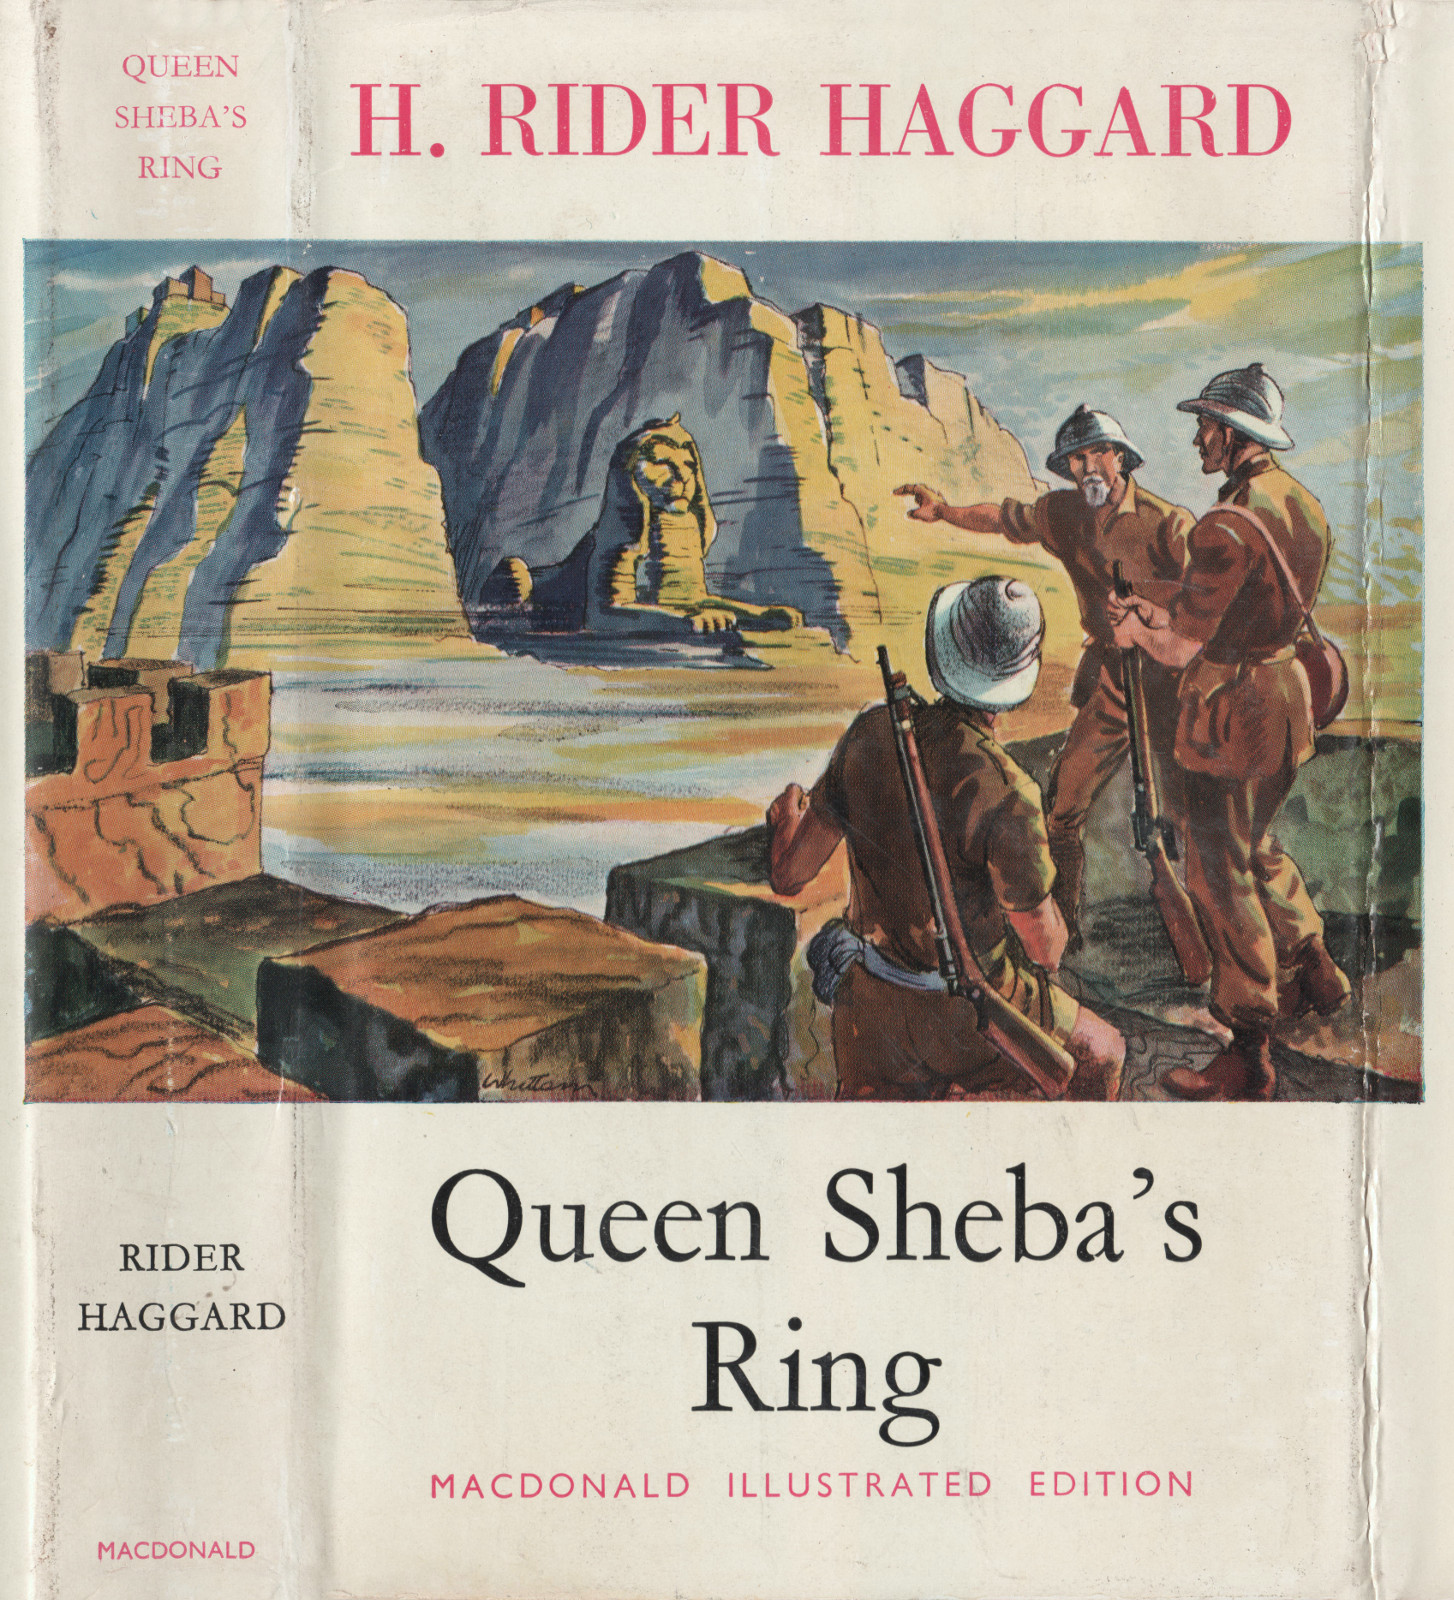 Queenshebasringmacdonalddustjacket